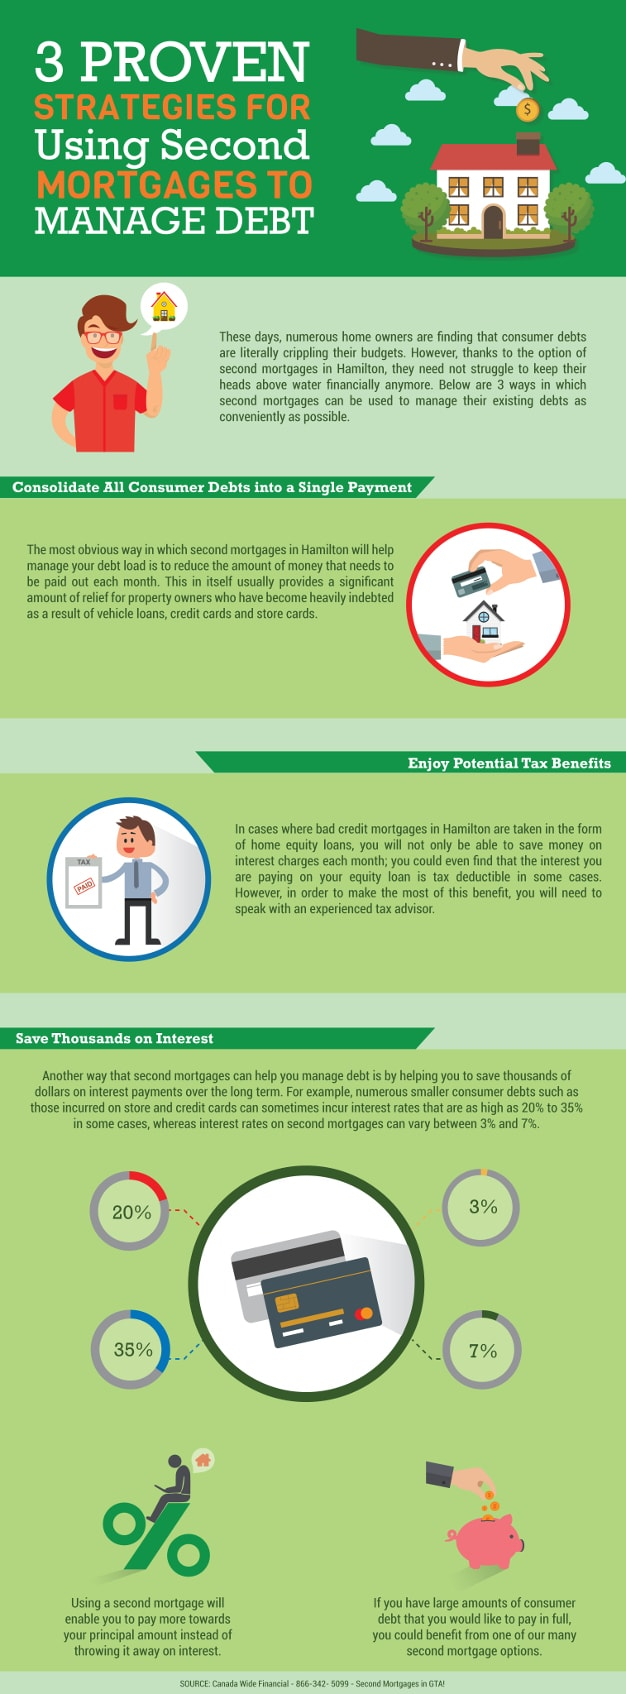 3 Proven Strategies for Using Second Mortgages to Manage Debt - Infographic